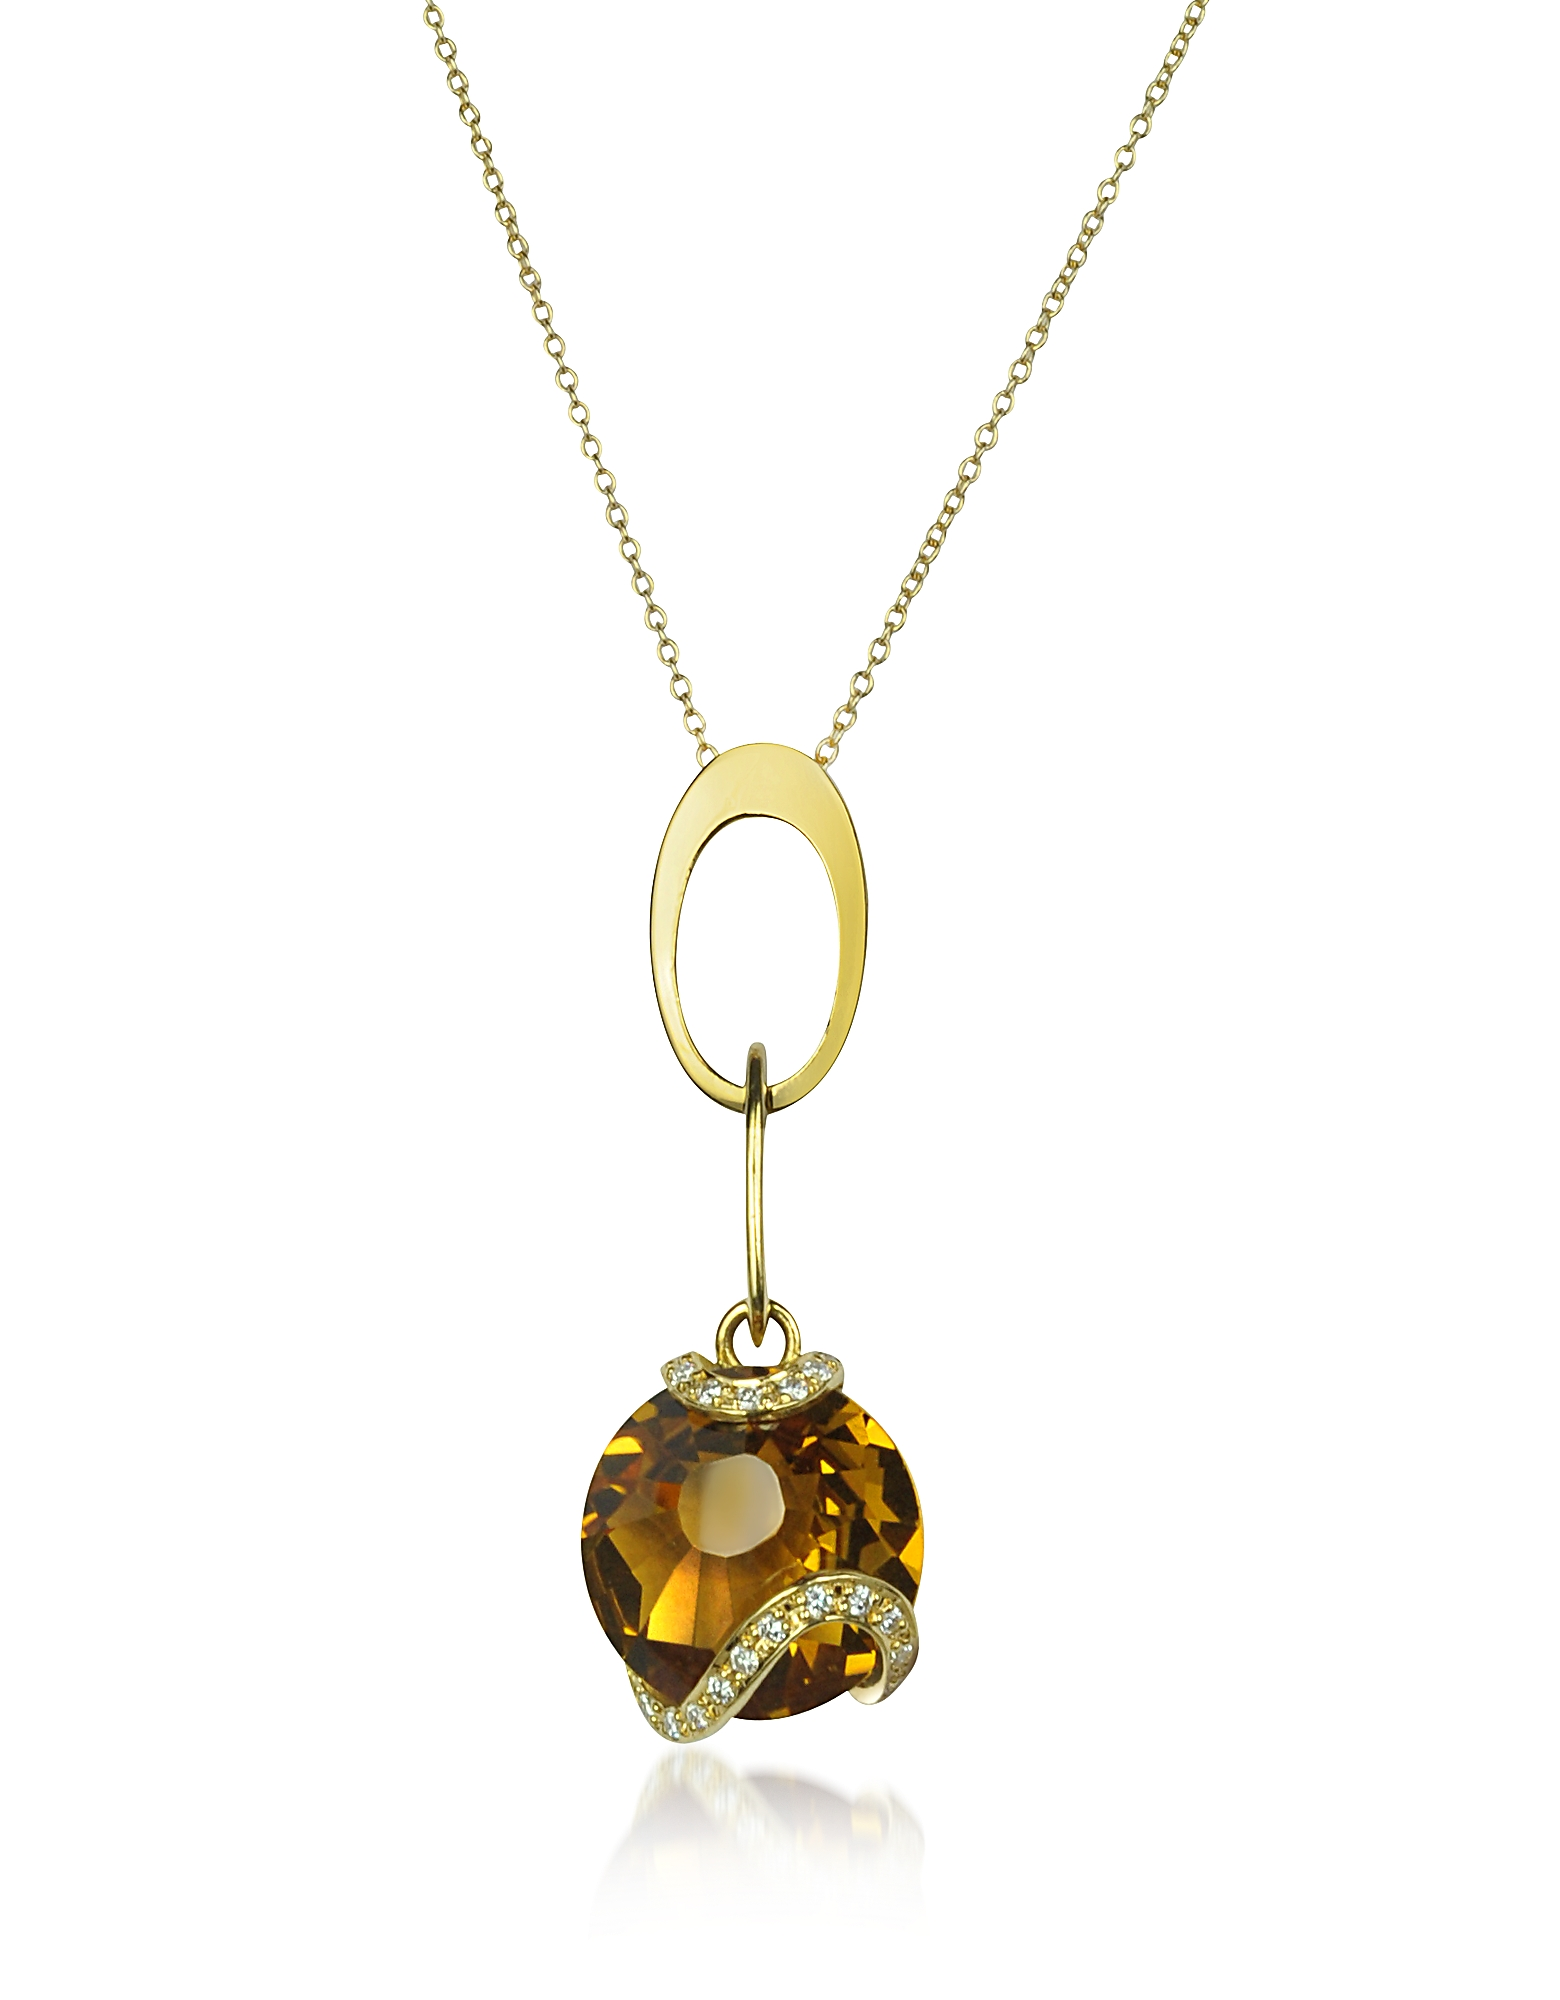 Incanto Royale Necklaces, Citrine and Diamond 18K Gold Charm Necklace